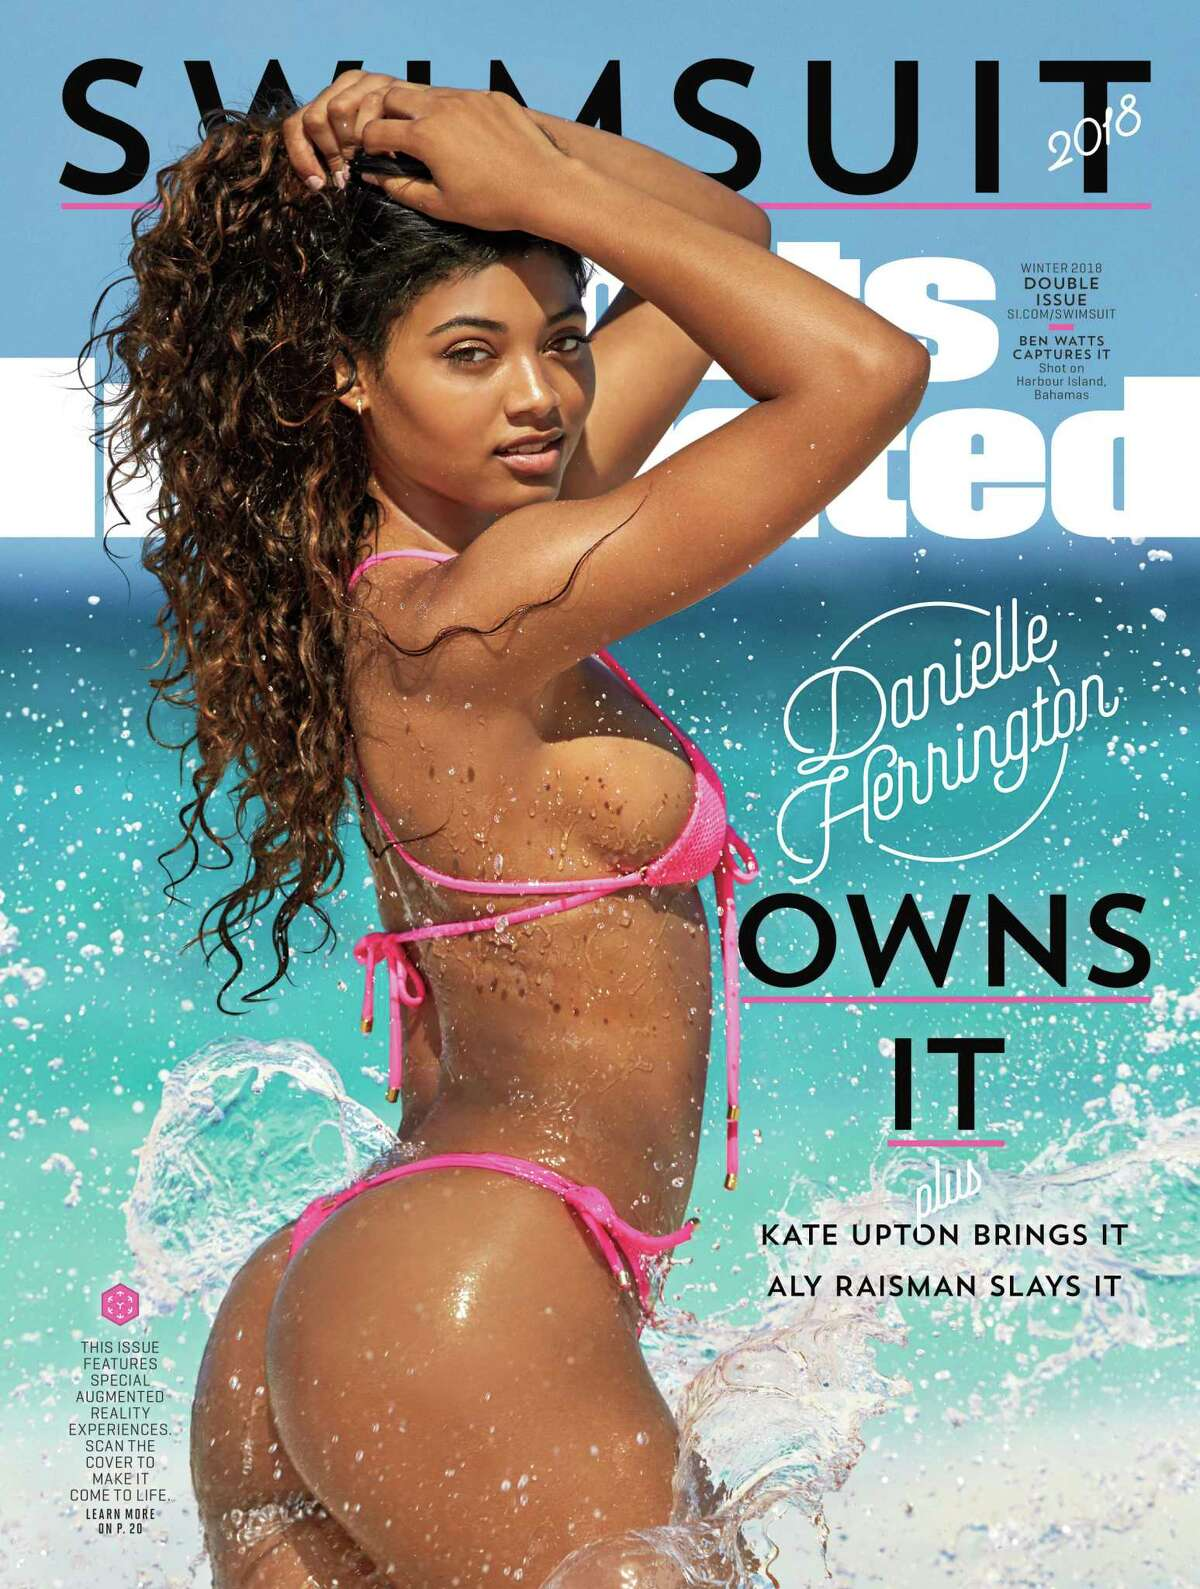 This image provided by Sports Illustrated shows the cover for the 2018 swimsuit edition issue of the magazine, showing Danielle Herrington. The magazine revealed its swimsuit edition cover Tuesday, Feb. 13, 2018. (Ben Watts/Sports Illustrated via AP)